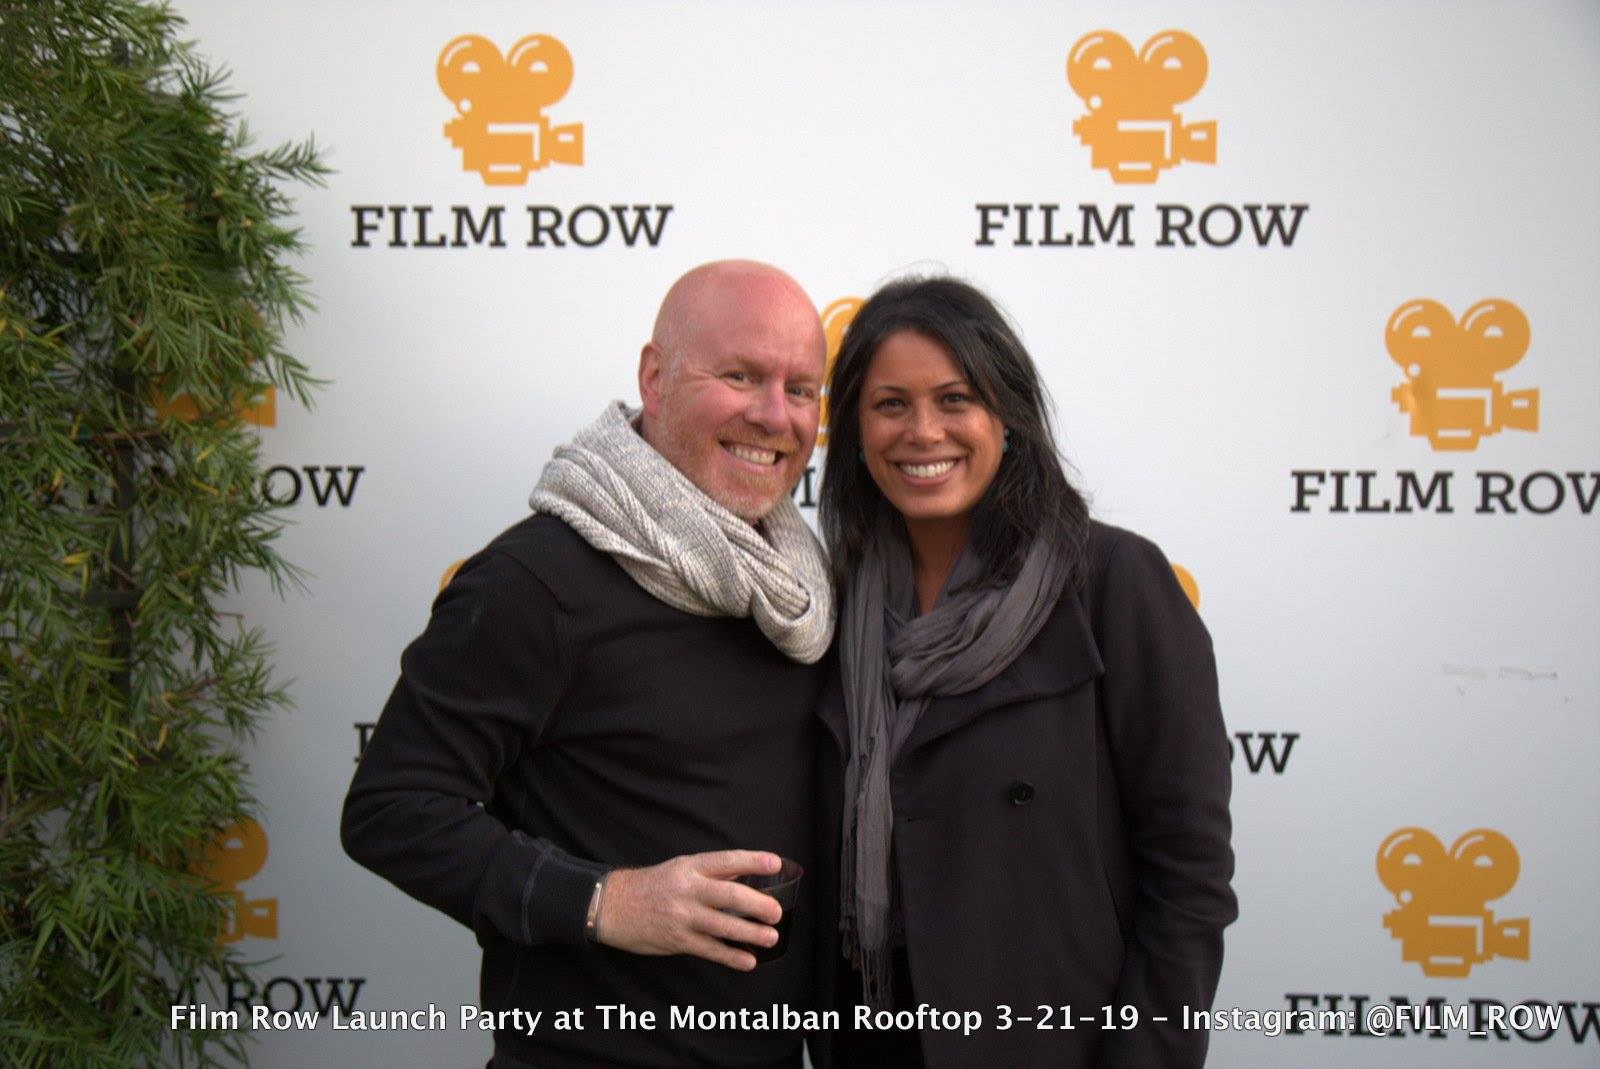 Film Row Launch Party. Photo: Debi Dodge